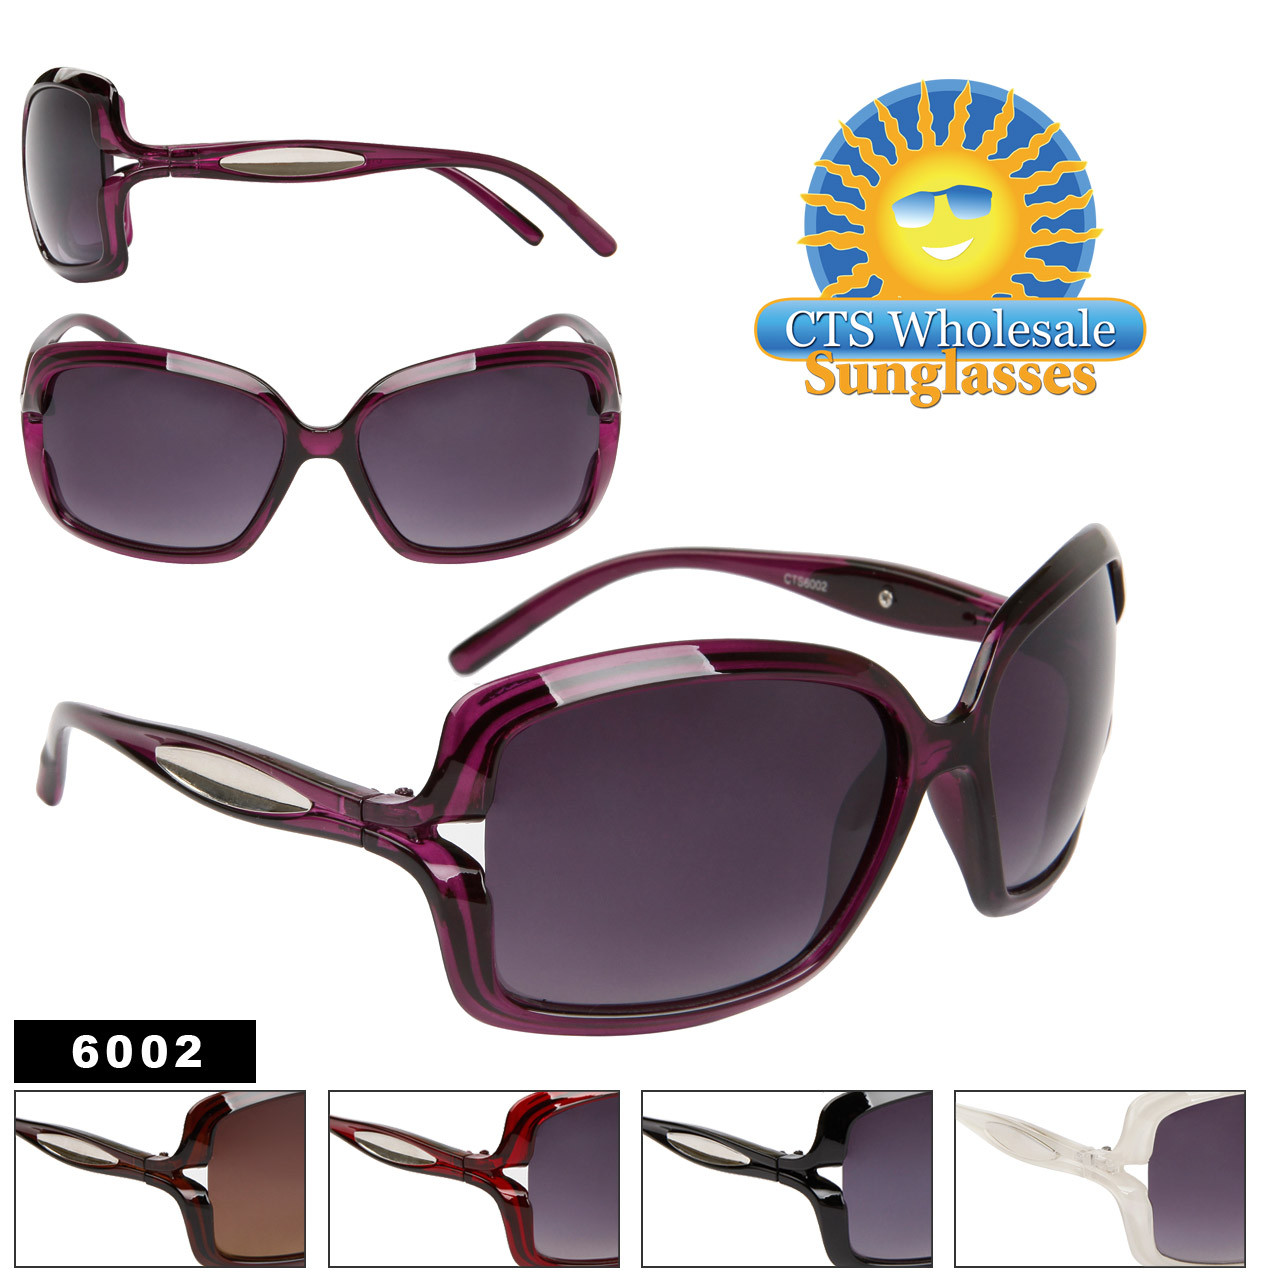 Wholesale Sunglasses 6002